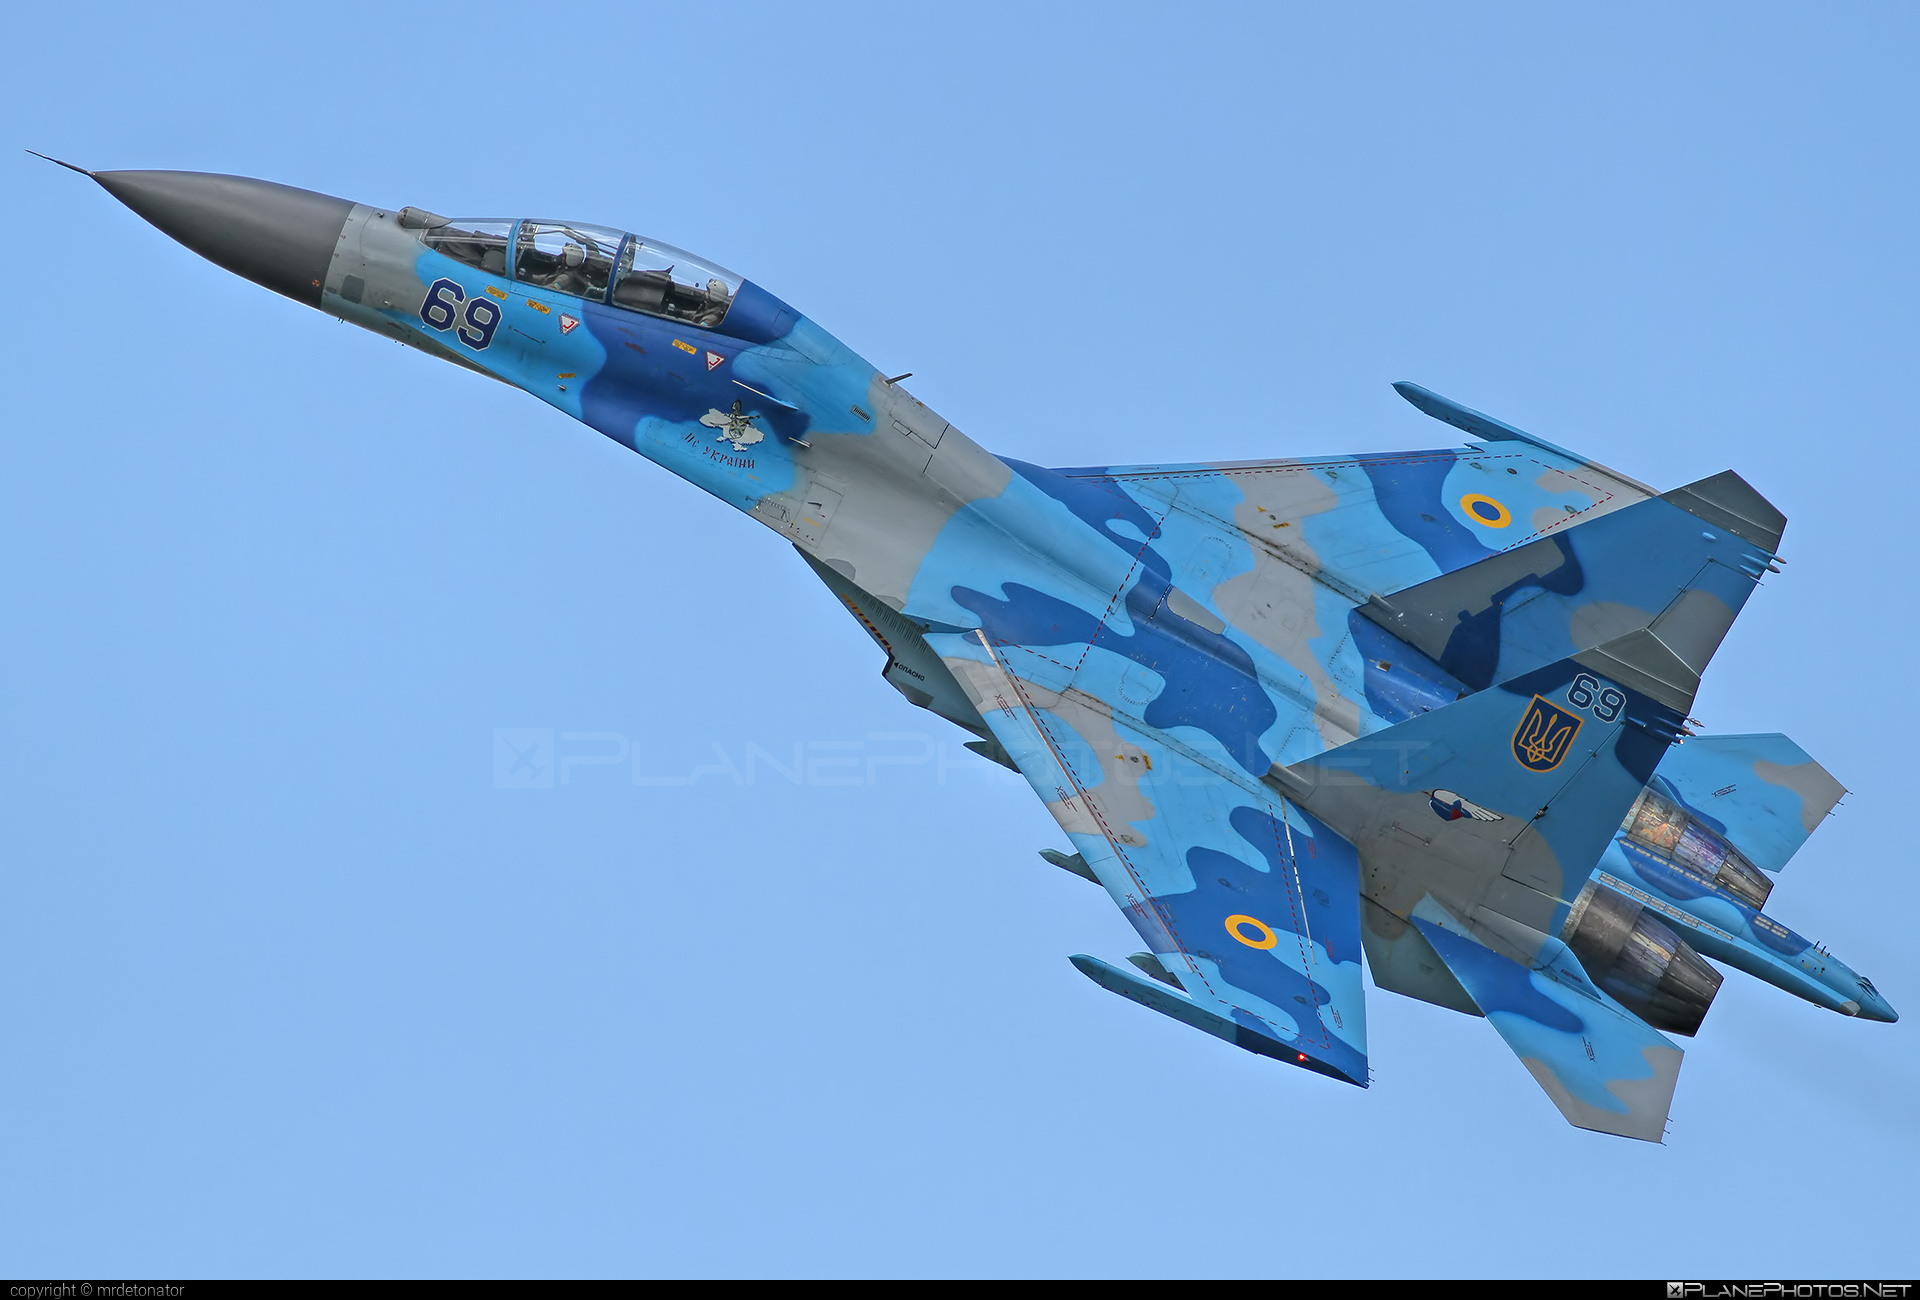 Sukhoi Su-27UB - 69 operated by Povitryani Syly Ukrayiny (Ukrainian Air Force) #povitryanisylyukrayiny #radomairshow #radomairshow2013 #su27 #su27ub #sukhoi #sukhoi27 #ukrainianairforce